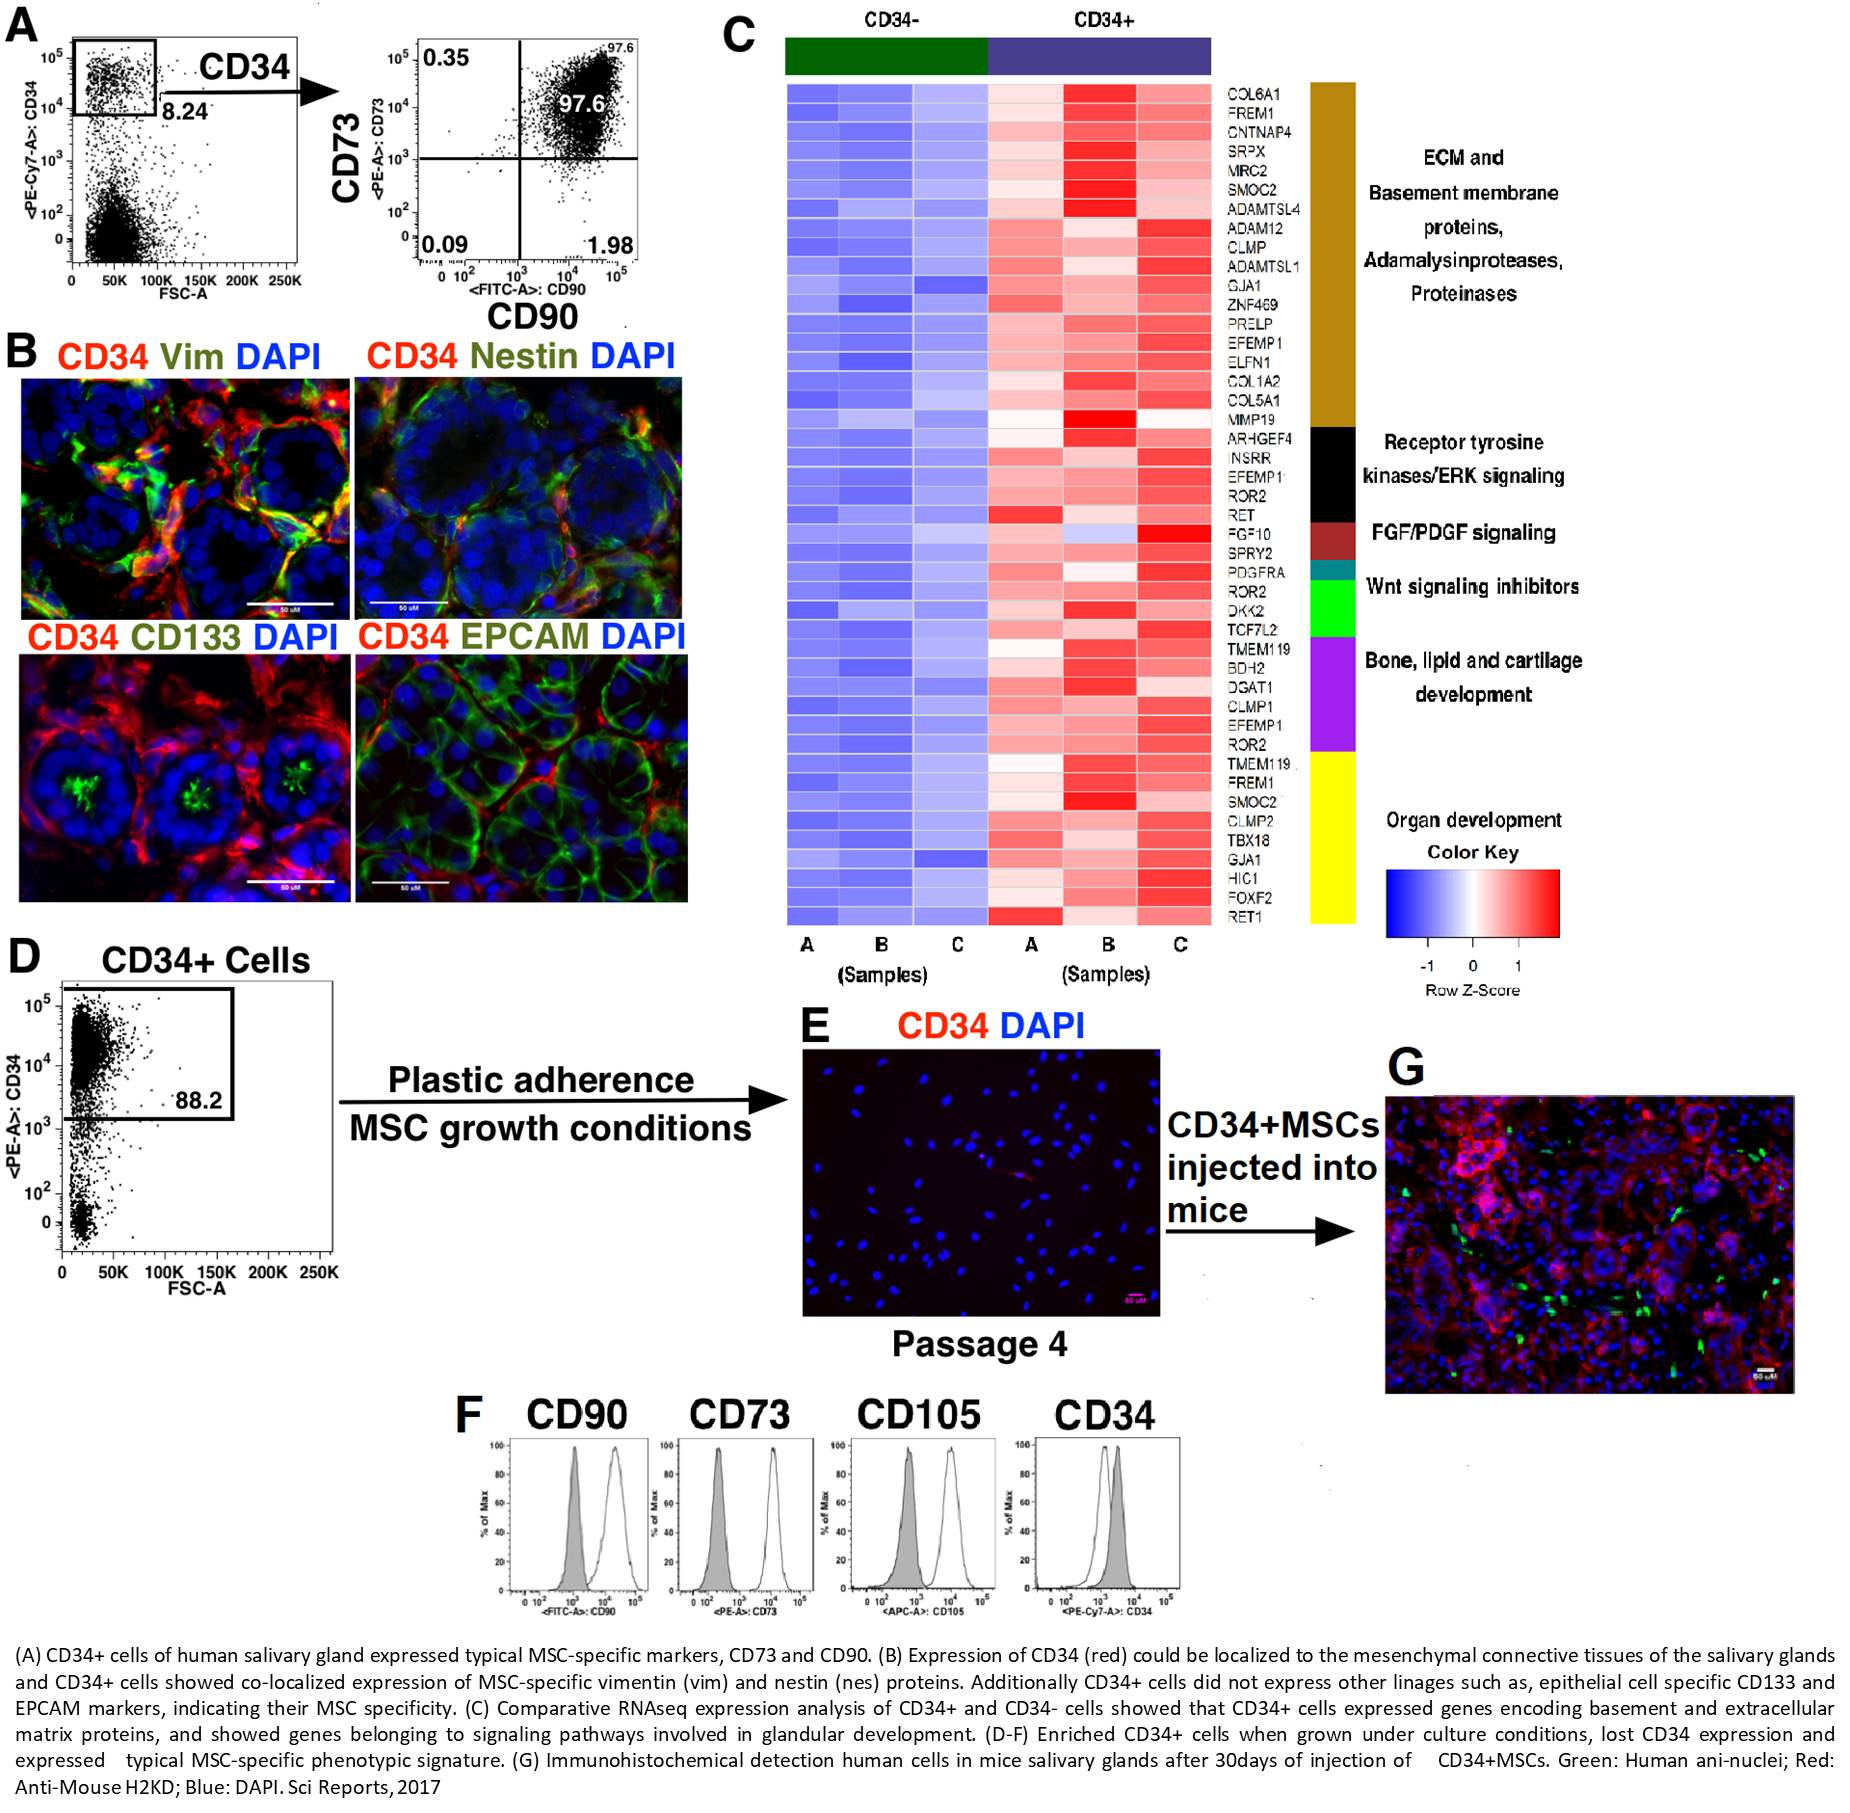 Characterization of functional mesenchymal stem cells in salivary glands